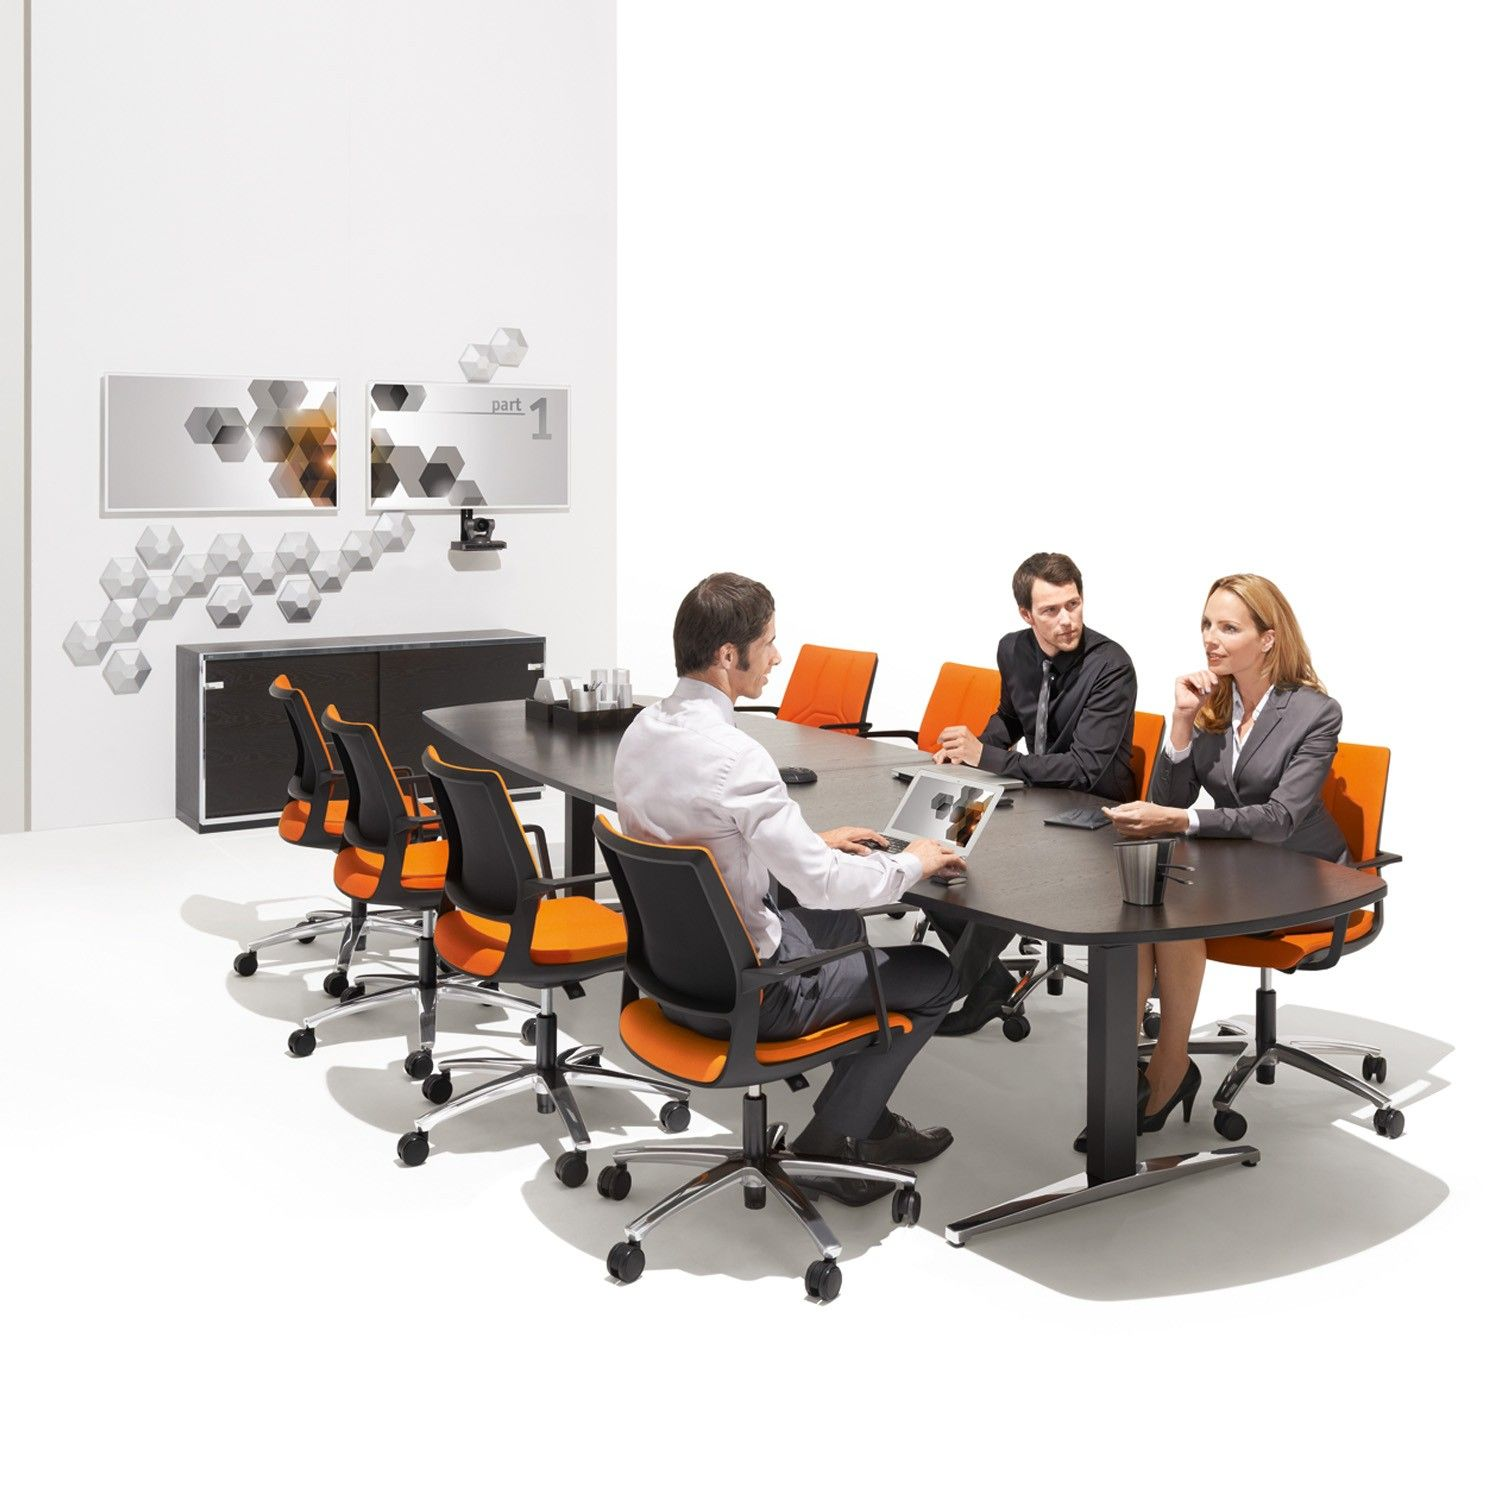 Attention T Conference Table Was Designed By Andreas Struppler With - Height adjustable meeting table